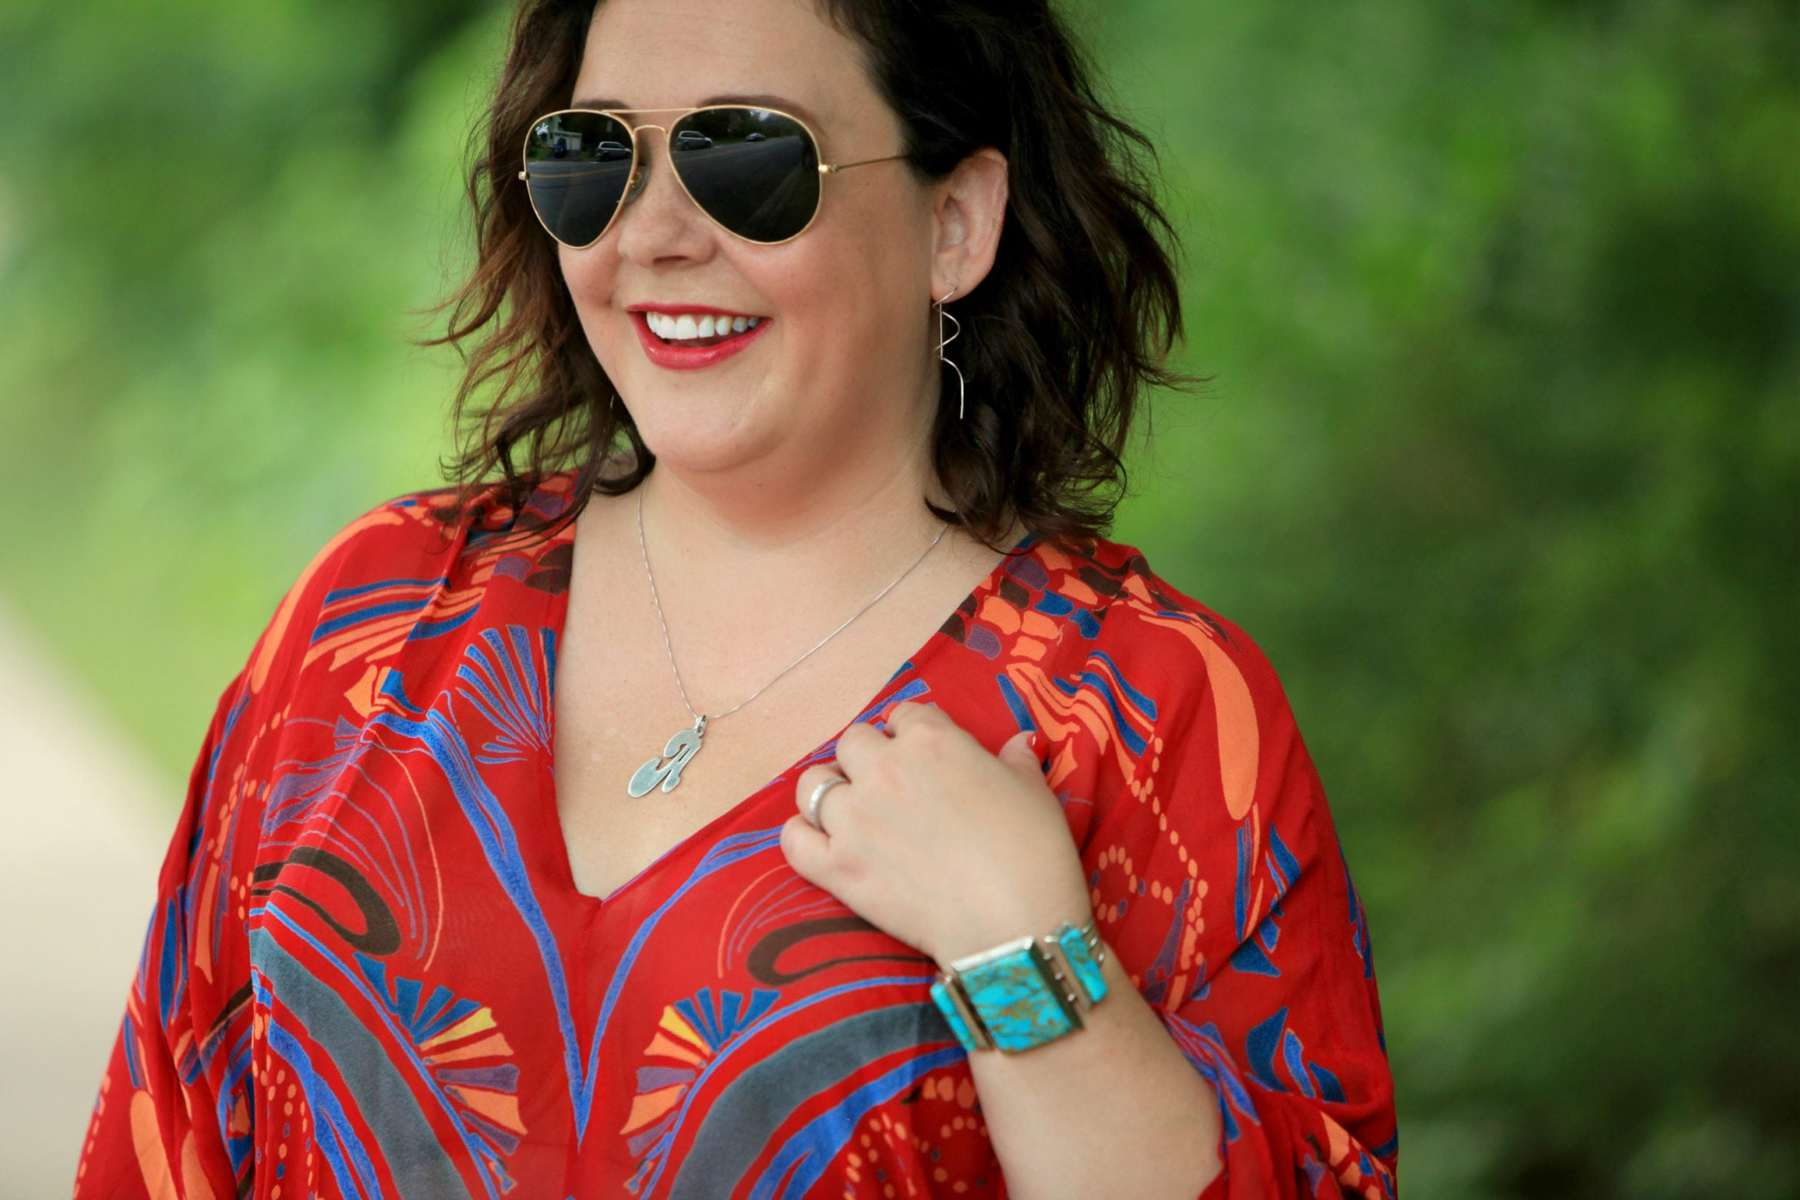 Closeup of Alison Gary smiling away from the camera. She is wearing dark aviator sunglasses, a red printed v neck blouse, and a turquoise and sterling silver cuff bracelet.